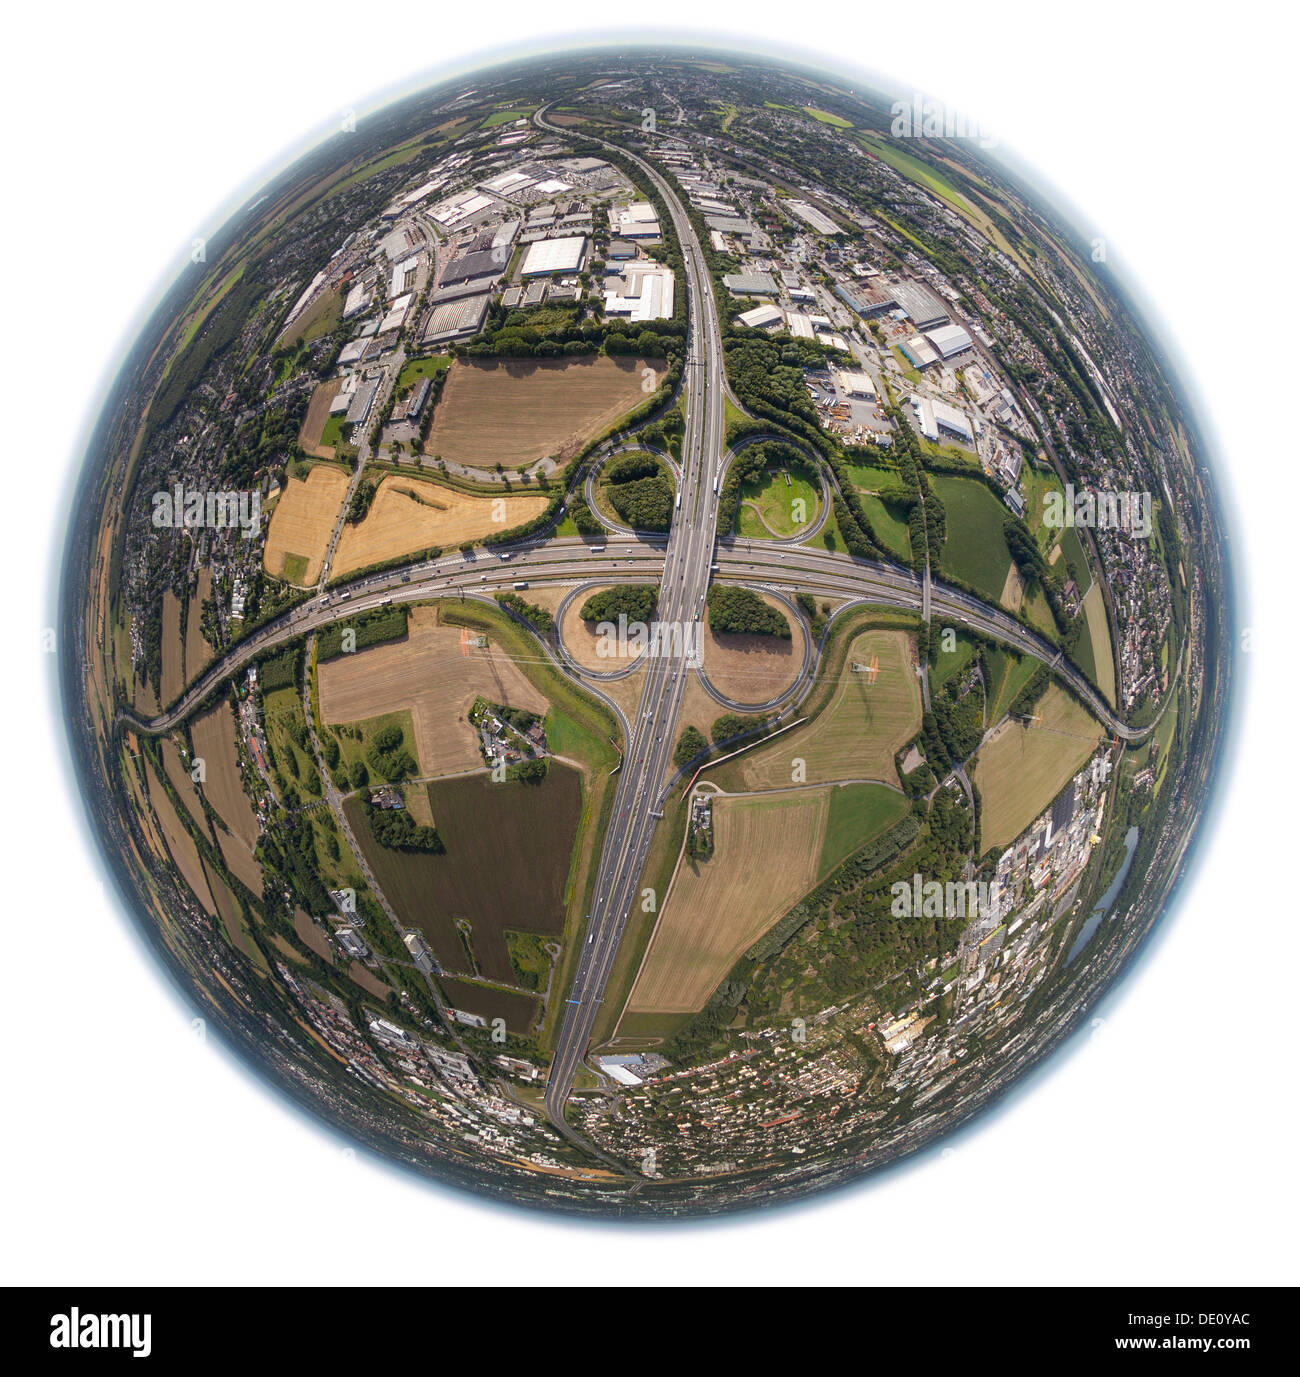 Aerial view, shot with a fisheye lens, Dortmund West motorway intersection, A45 motorway and A40 motorway, Dortmund, Ruhr area - Stock Image